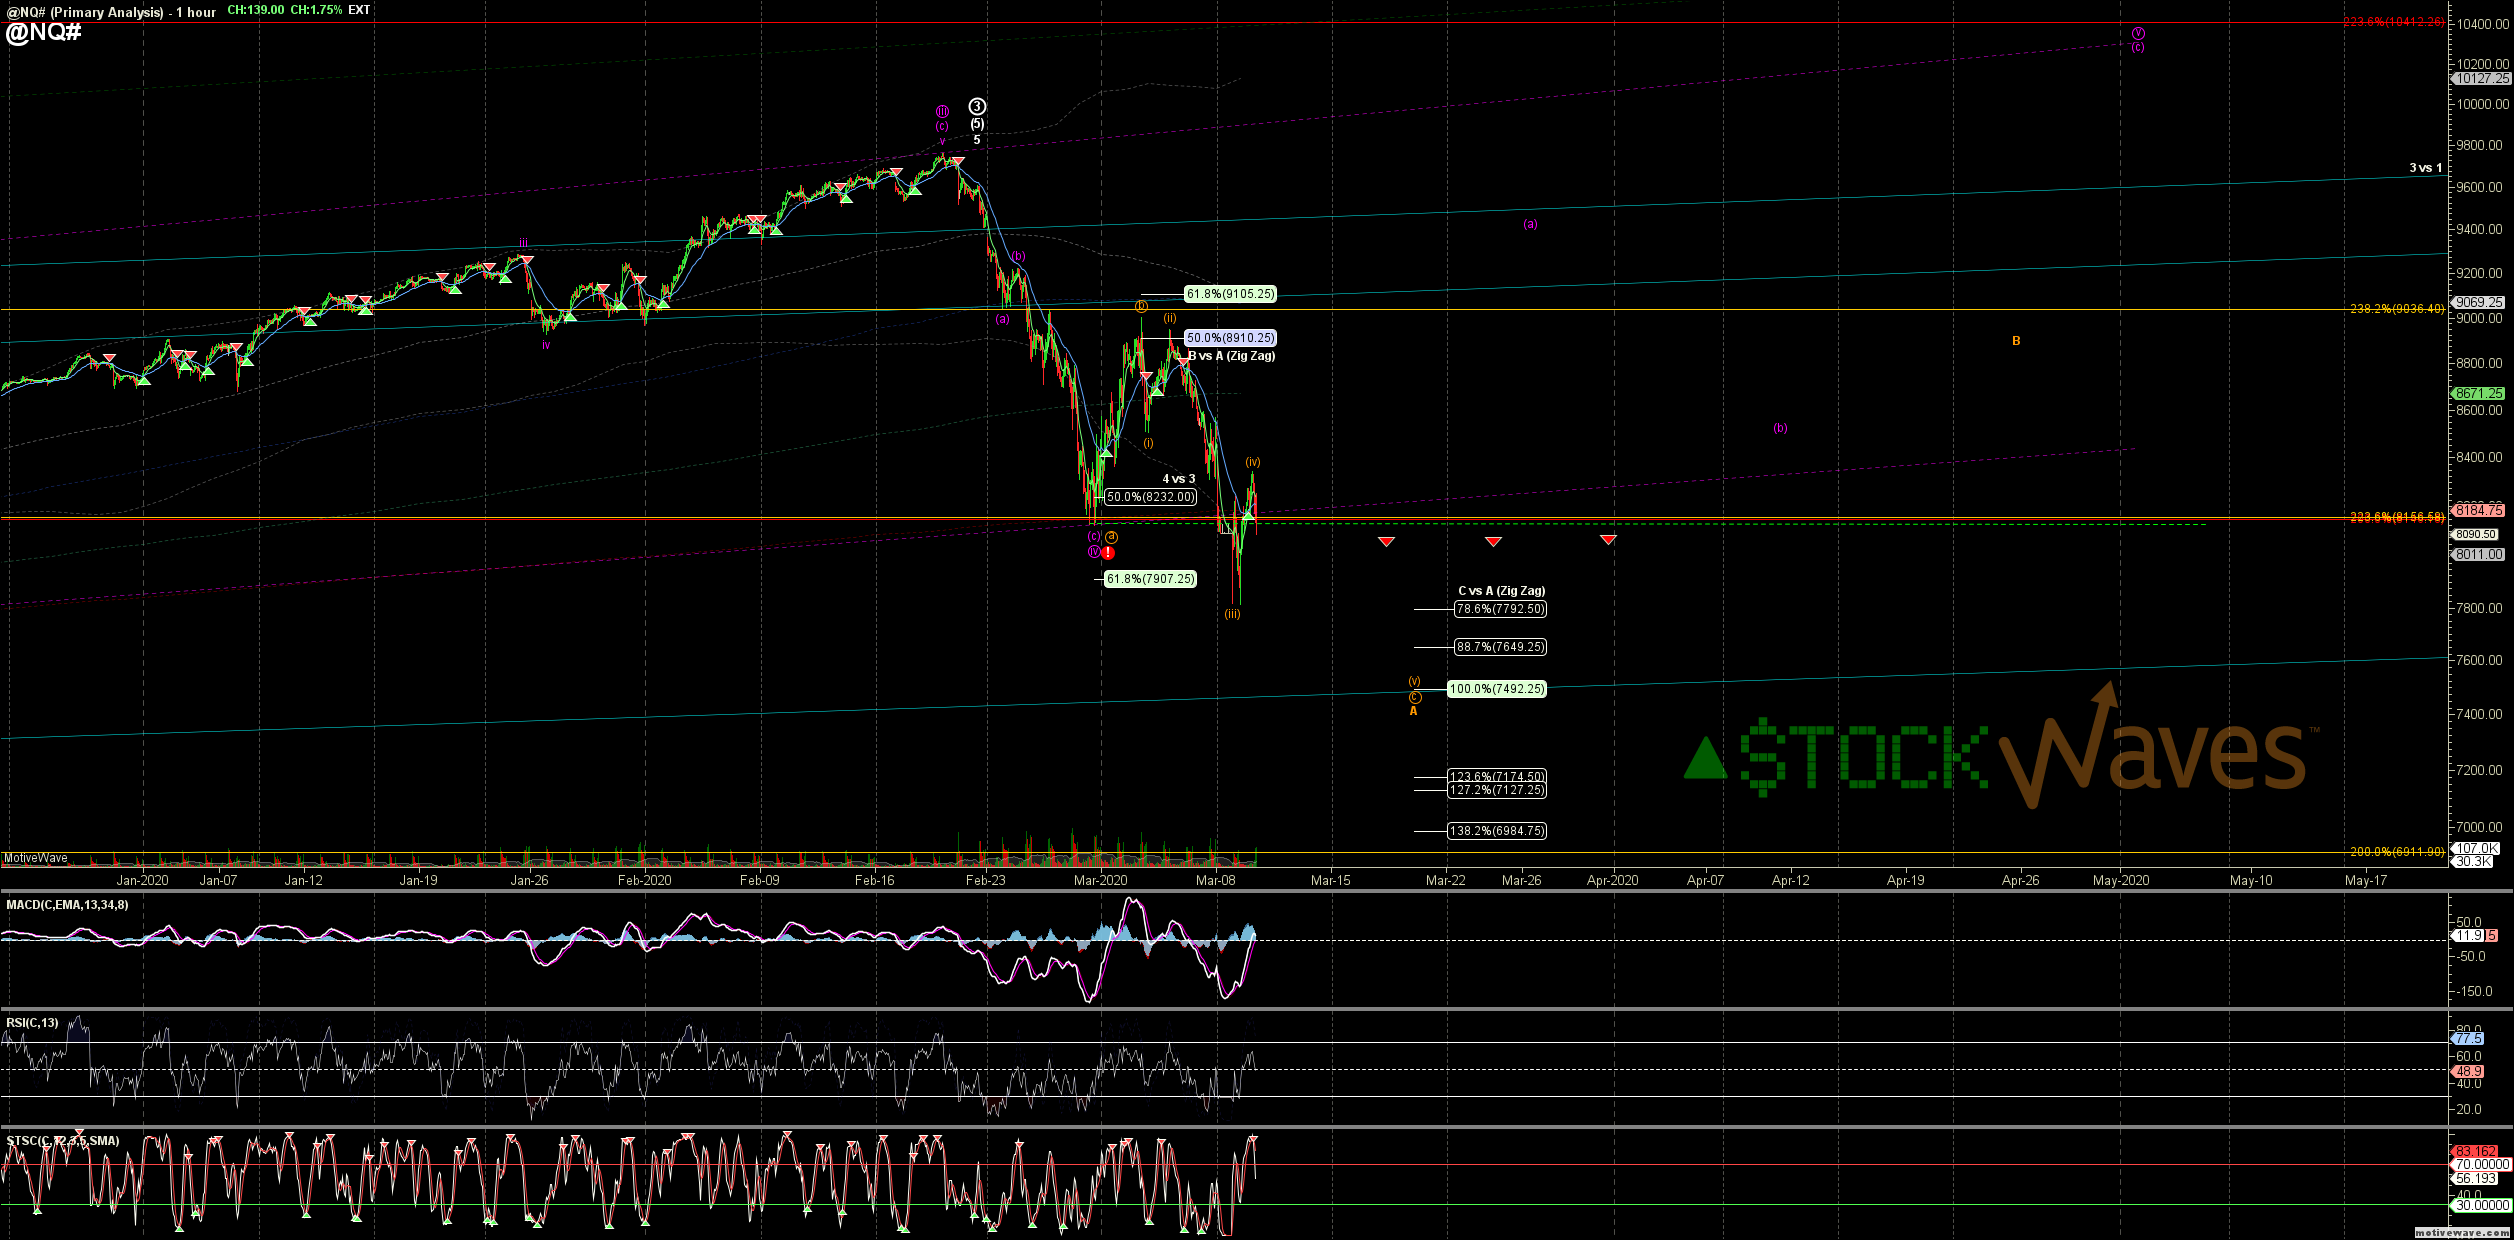 @NQ# - Primary Analysis - Mar-10 1054 AM (1 hour)